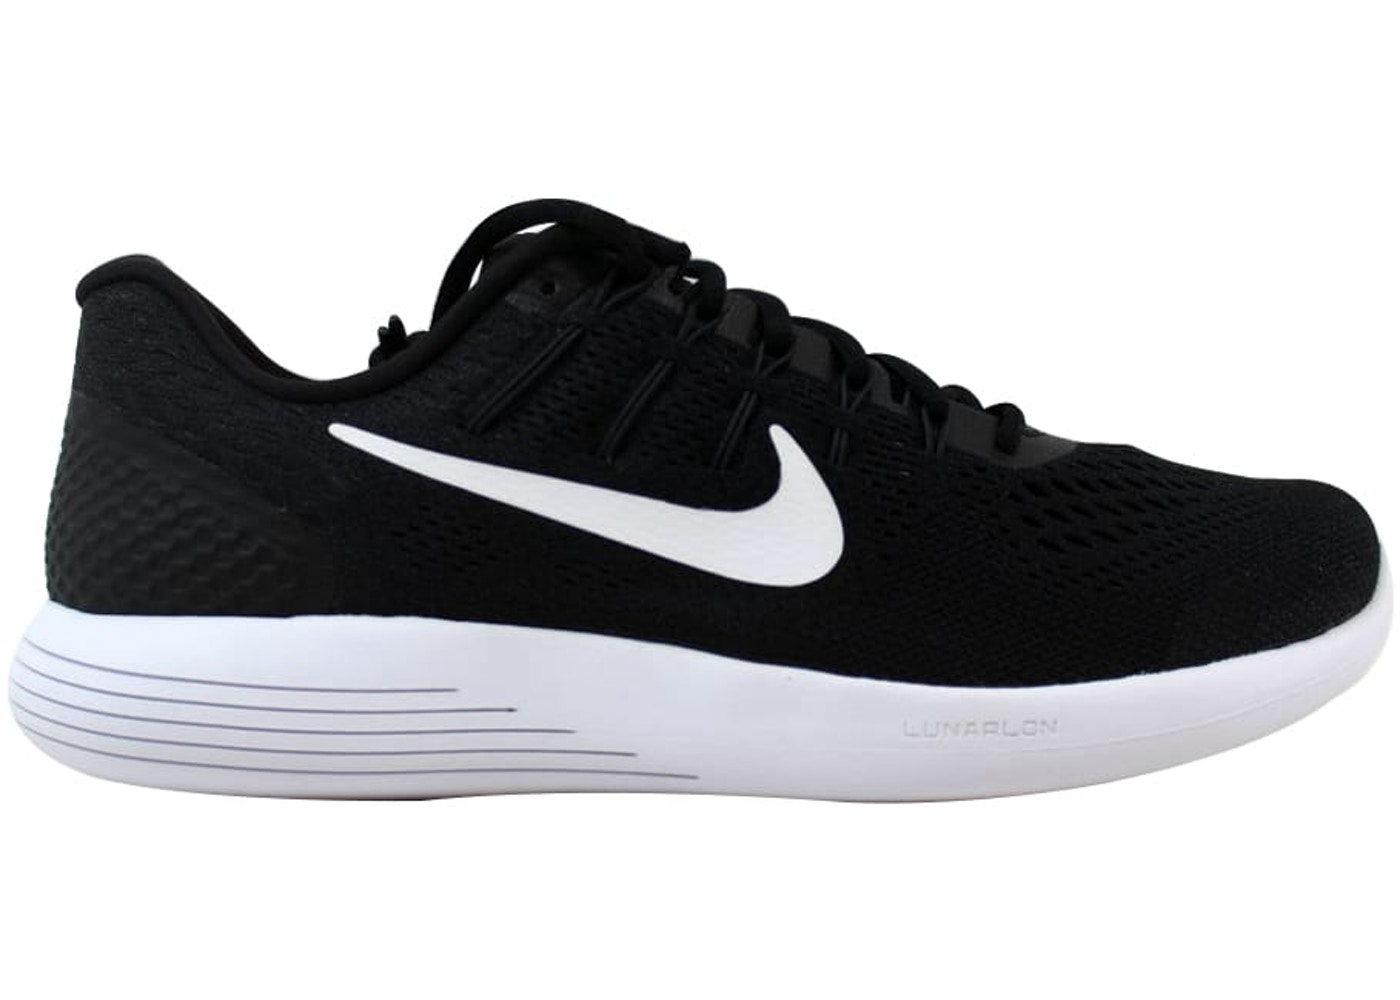 73f975ae4ab2d8 Sell. or Ask. Size --. View All Bids. Nike Lunarglide 8 Black White- Anthracite